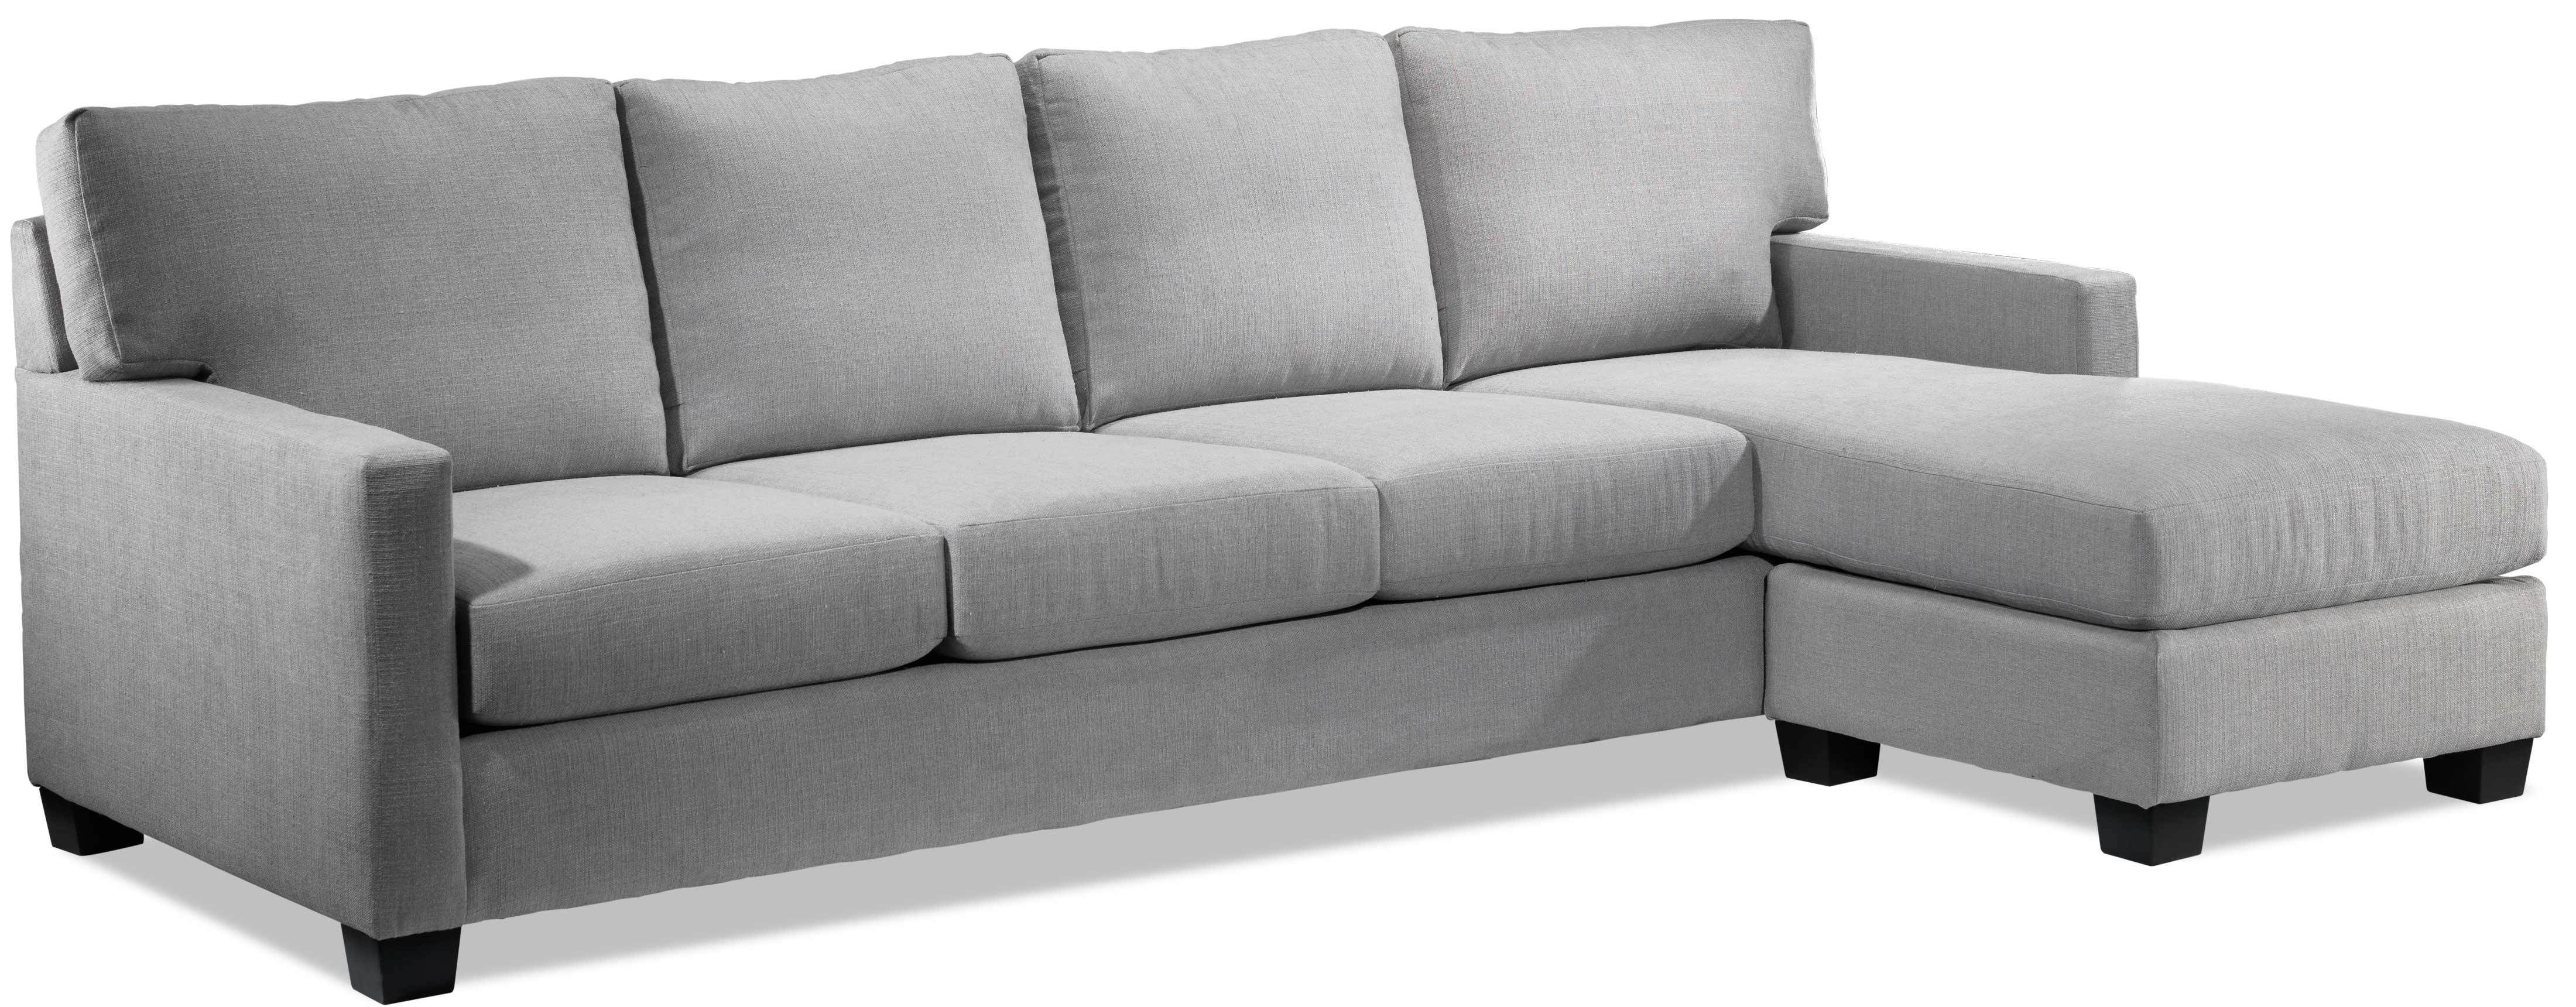 Wondrous Danielle 2 Piece Sectional With Right Facing Chaise Java Andrewgaddart Wooden Chair Designs For Living Room Andrewgaddartcom